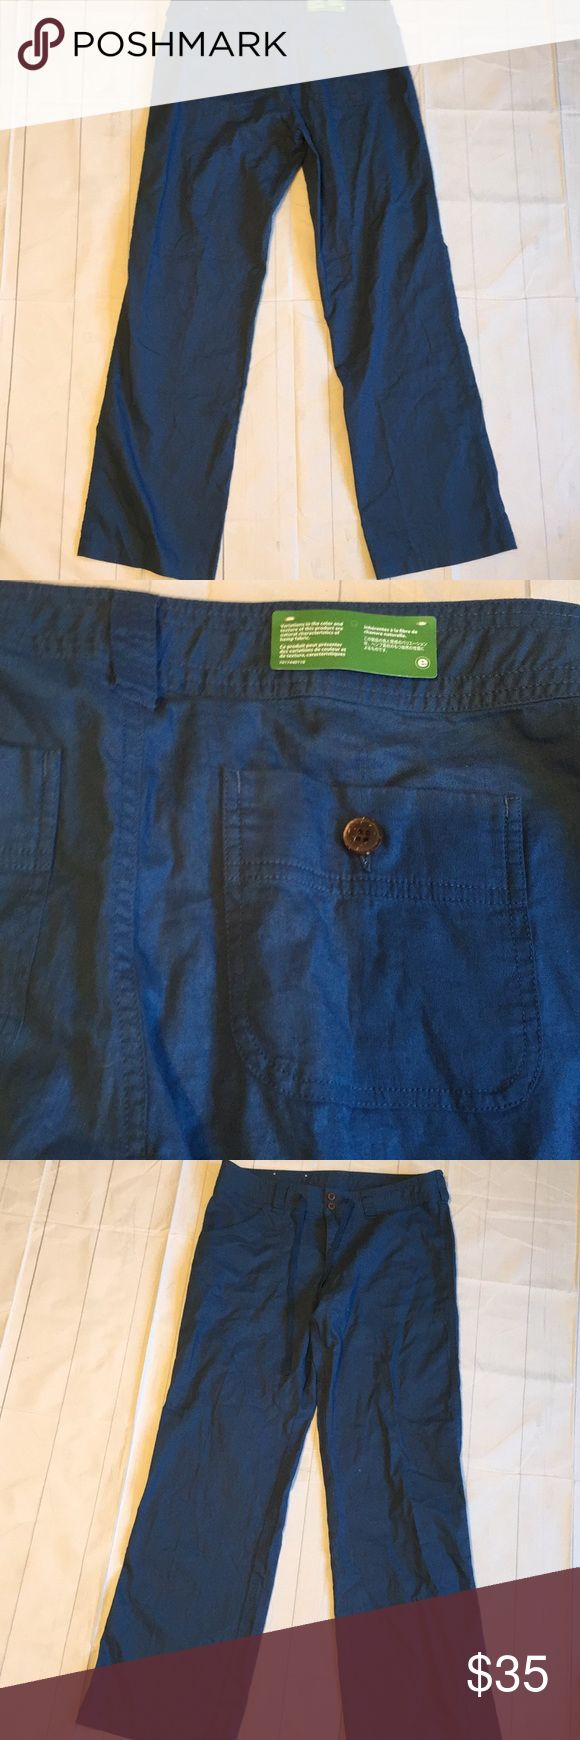 "Patagonia pants size 12 Patagonia pants size 12. New without tags. Drawstring in waist and buttons. 55% hemp 45% organic cotton. 32"" inseam 16"" waist laying flat 9.5"" rise. Blue in color. Comes from smoke free and pet free home Patagonia Pants Trousers"